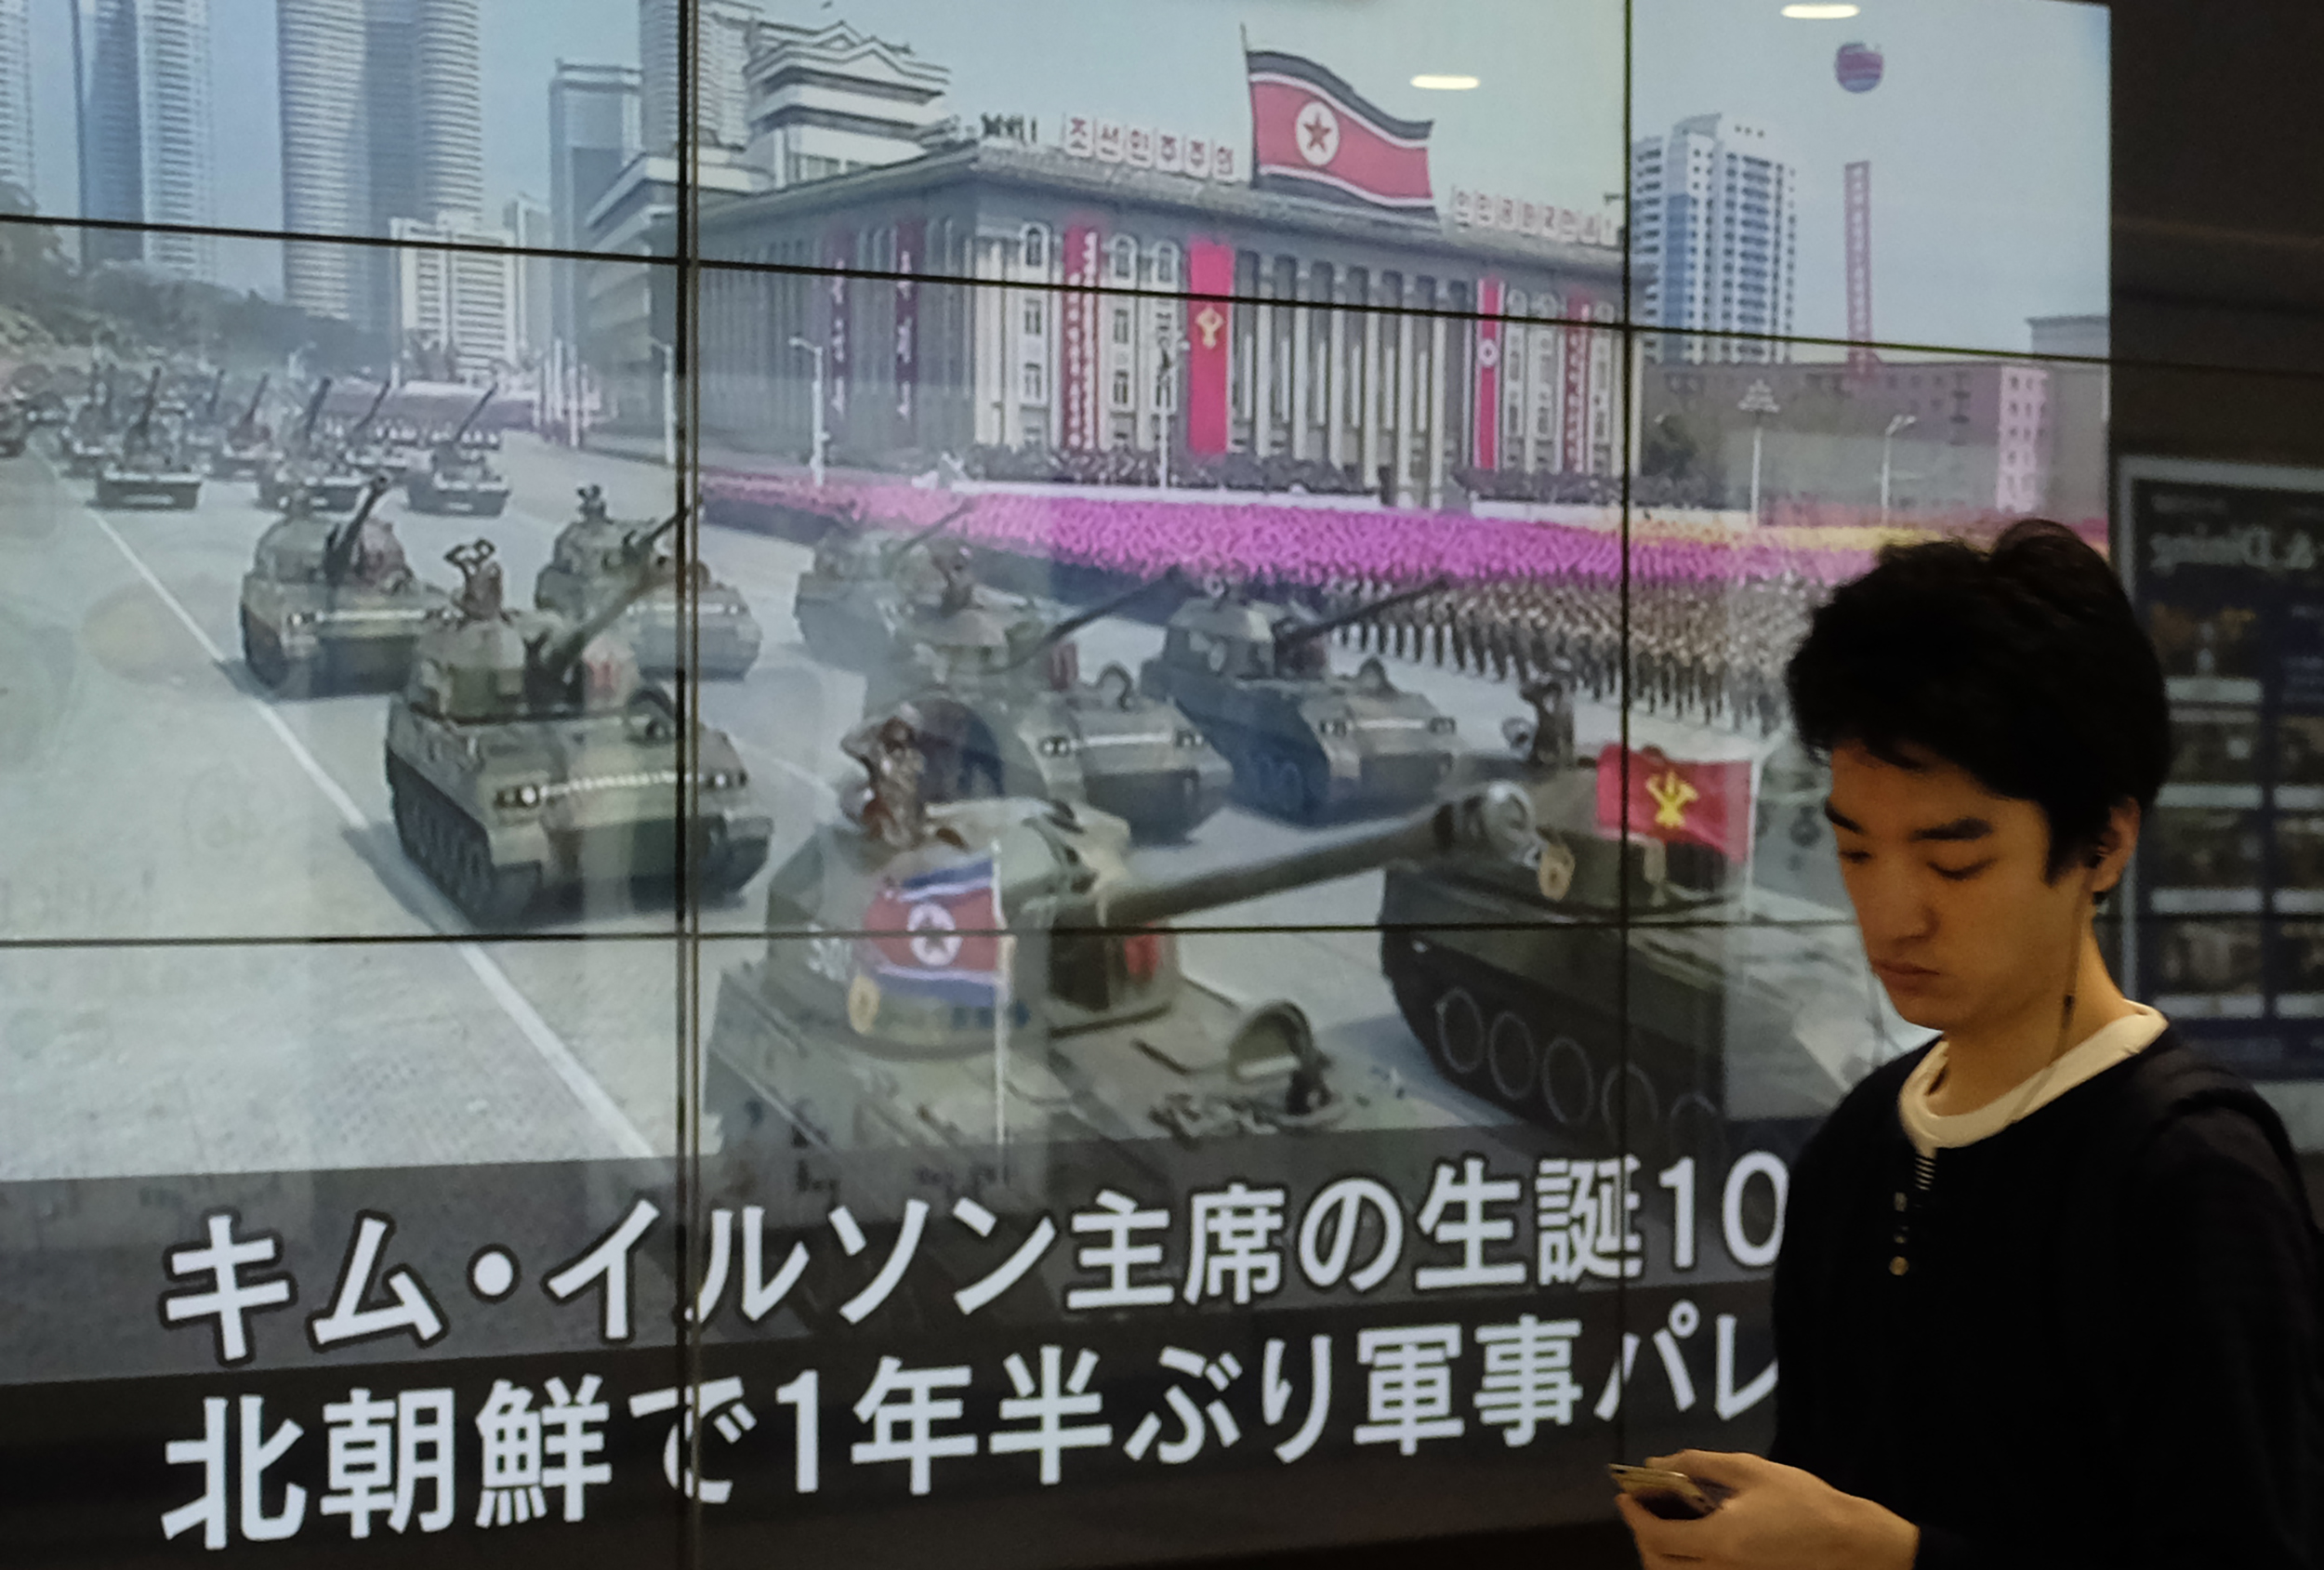 A man in Tokyo walks in front of a news video reporting a military parade marking the 105th anniversary of the birth of late North Korean leader Kim Il Sung on April 16, 2017.